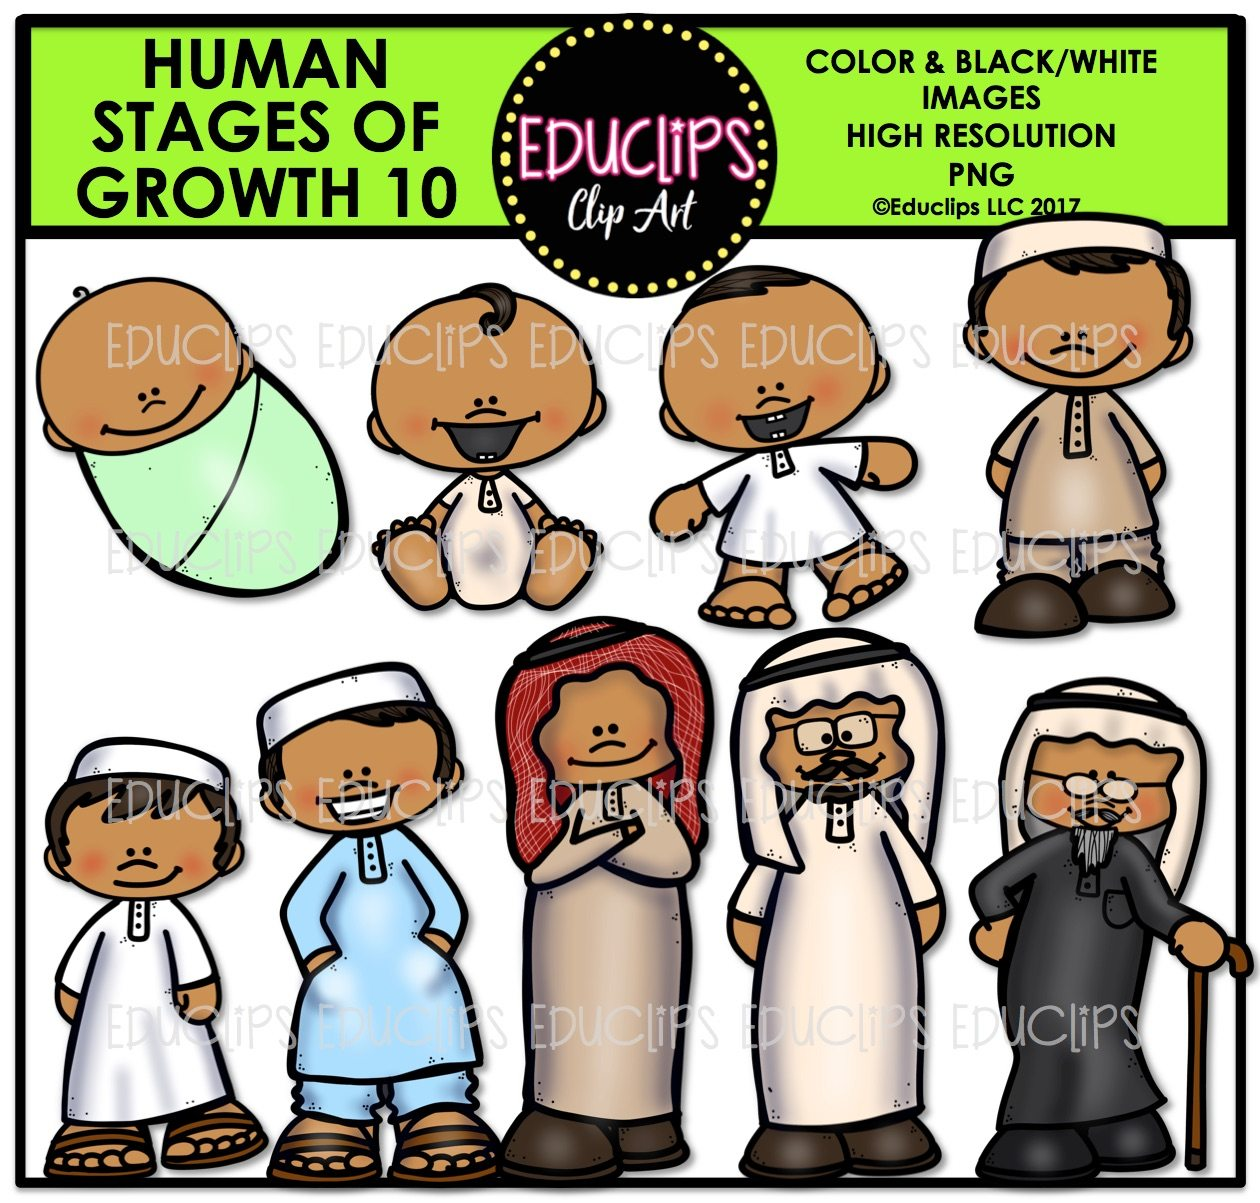 Human Stages Of Growth 10 Islamic Male Color And B Amp W